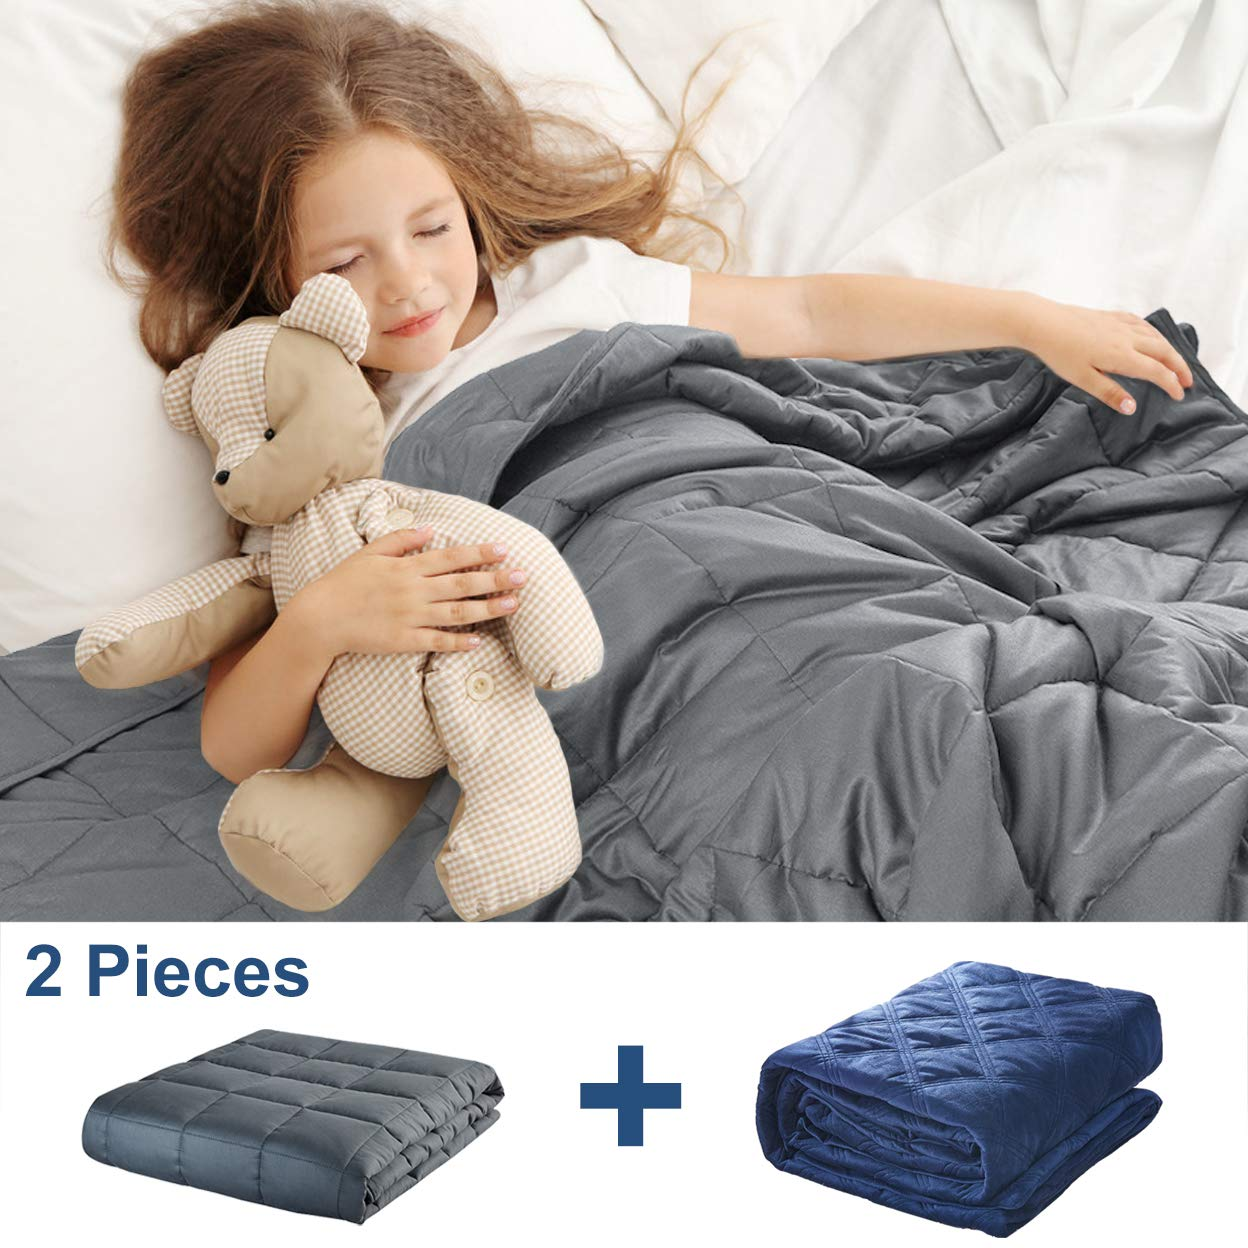 Weighted Blanket for Kids (10 lbs, 41''x60''), Weighted Blanket with Removable Cover Heavy Blanket with 100% Breathable Cotton and Glass Beads, Gray / Navy Blue by JOLLYVOGUE